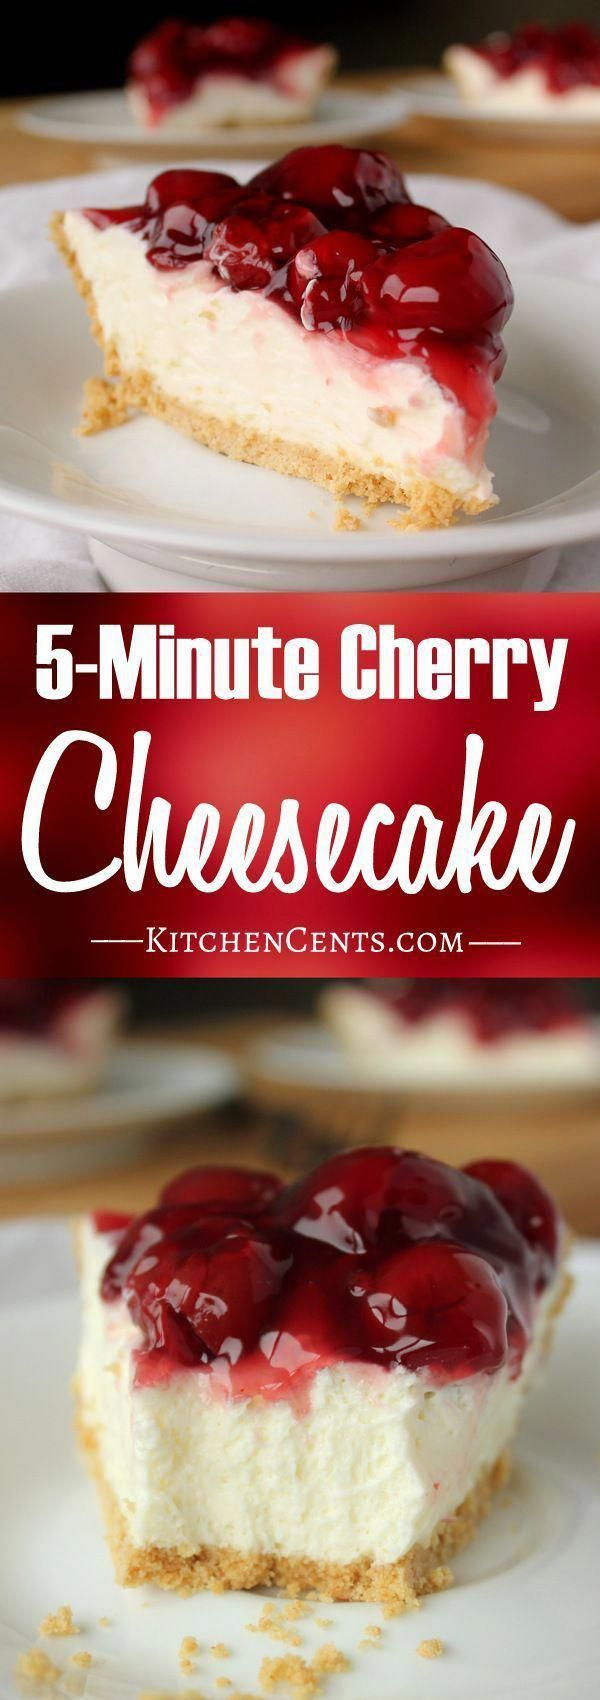 Easy 5-Minute Cherry Cheesecake  This 5-Minute No-Bake Cheesecake has a graham cracker crust filled with rich, cheesecake filling topped with sweet pie cherries. Make it in 5 minutes! #cheesecakedessertseasy